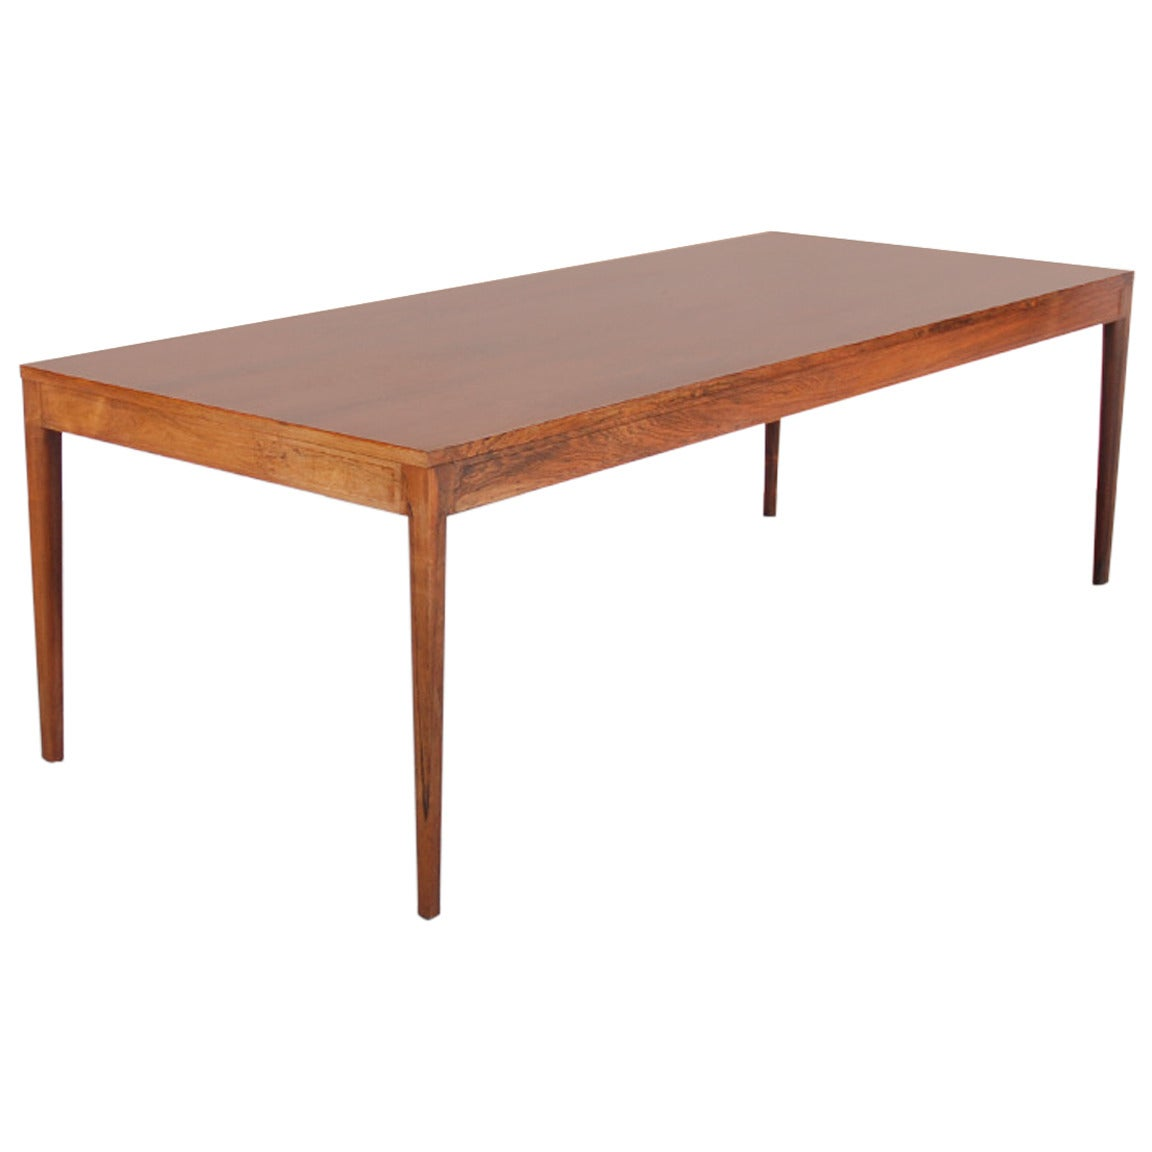 Long Diplomat Dining Table In Brazilian Rosewood By Finn Juhl For Sale At 1stdibs